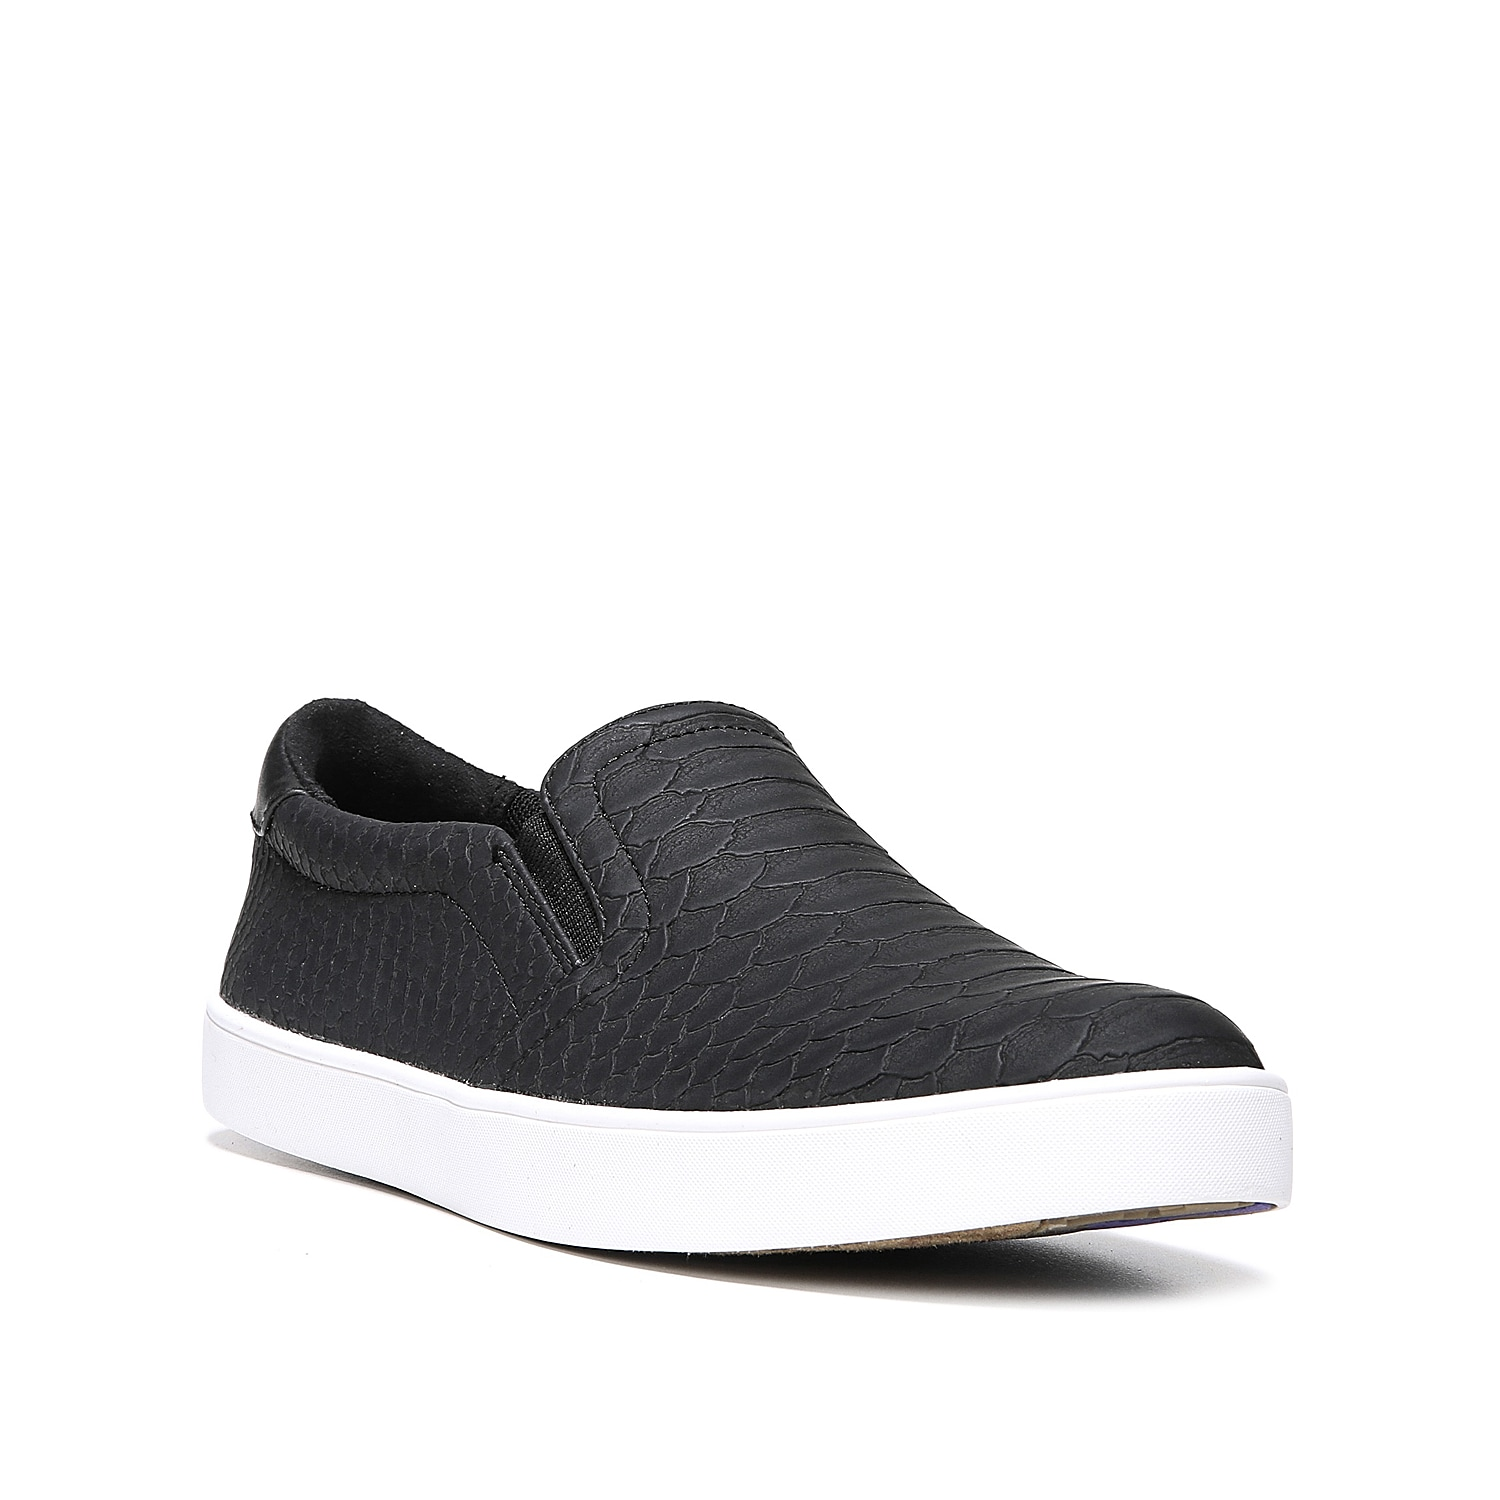 Slip on the  sporty and cute Madison sneaker and add some street style to your casual attire. These Dr. Scholl\\\'s flats feature a memory foam insole to keep your feet feeling great with your on-the-go athleisure lifestyle.